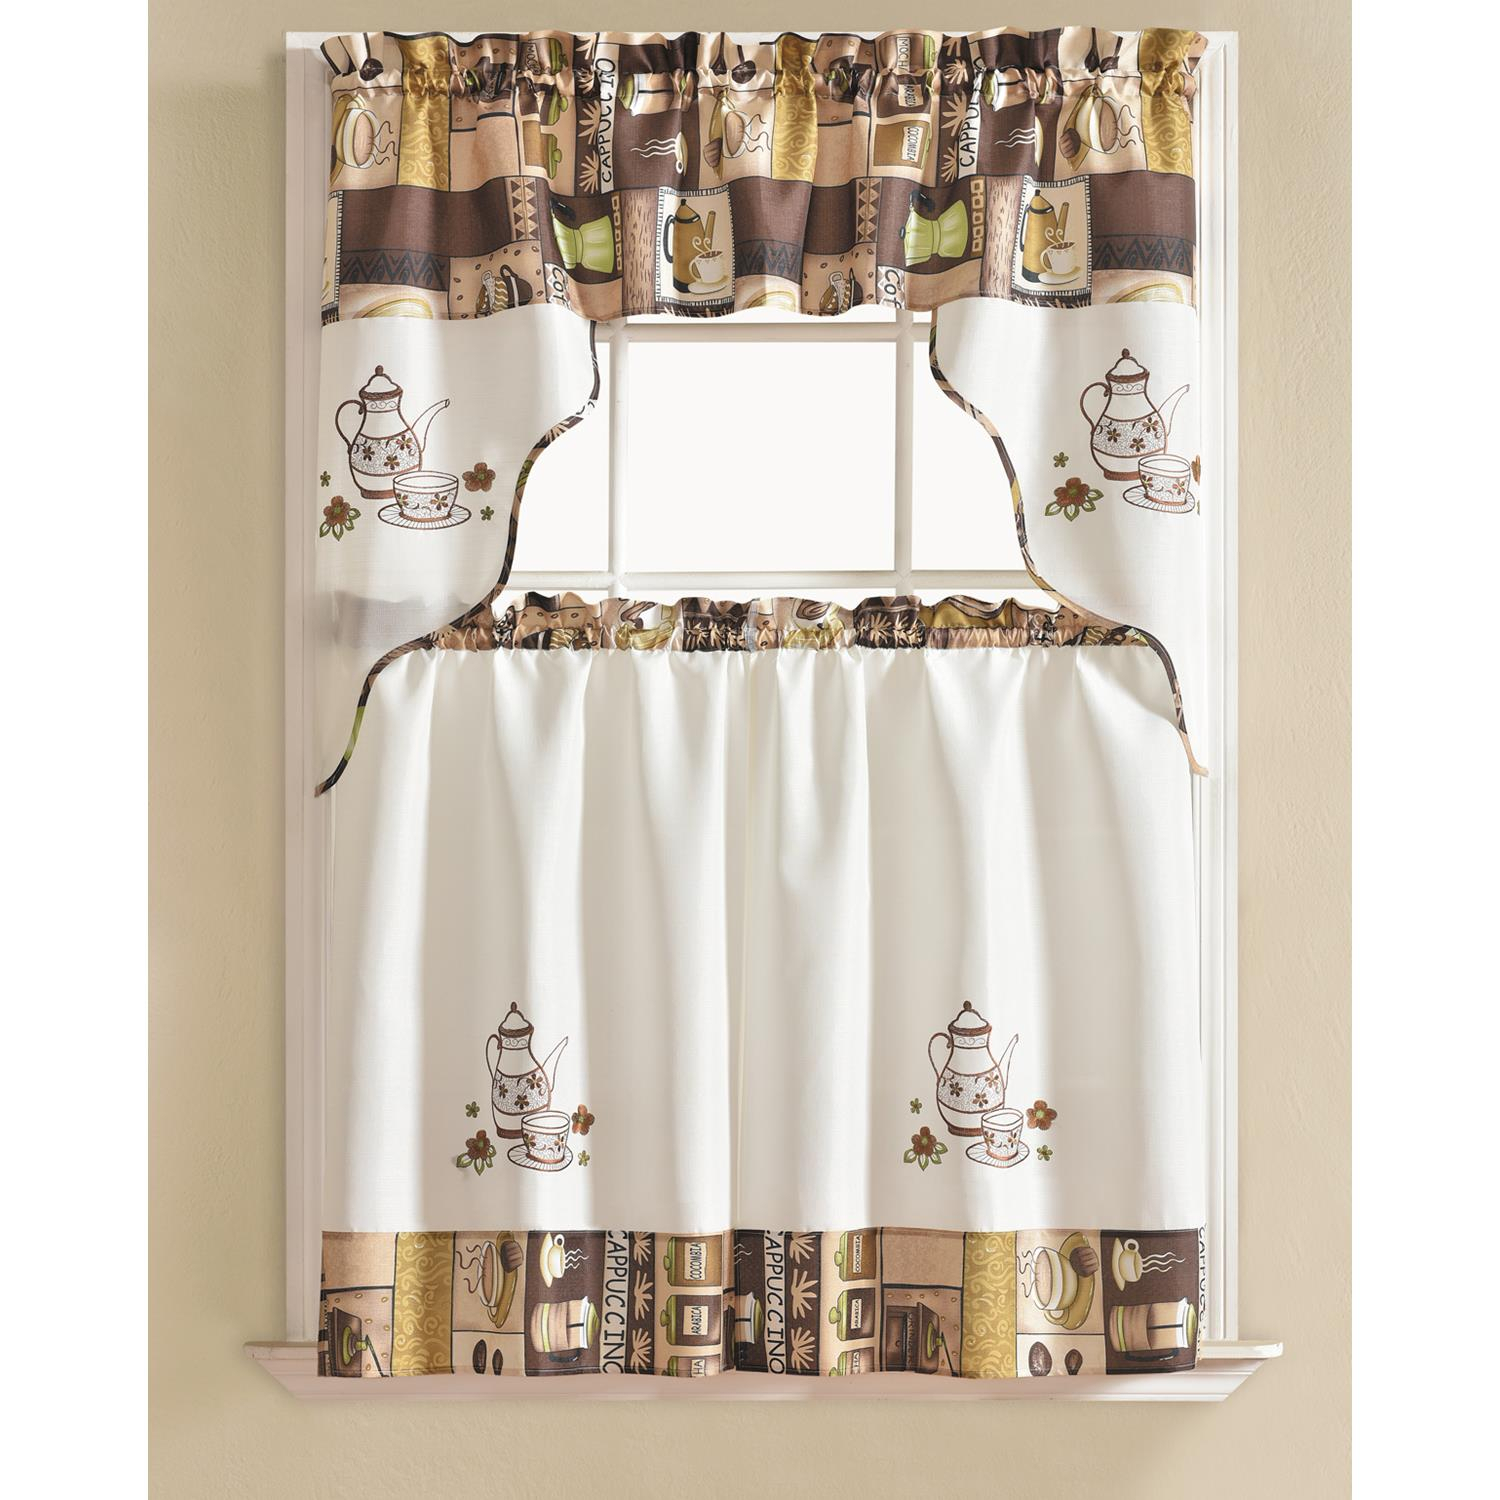 Popular Photo of Coffee Embroidered Kitchen Curtain Tier Sets